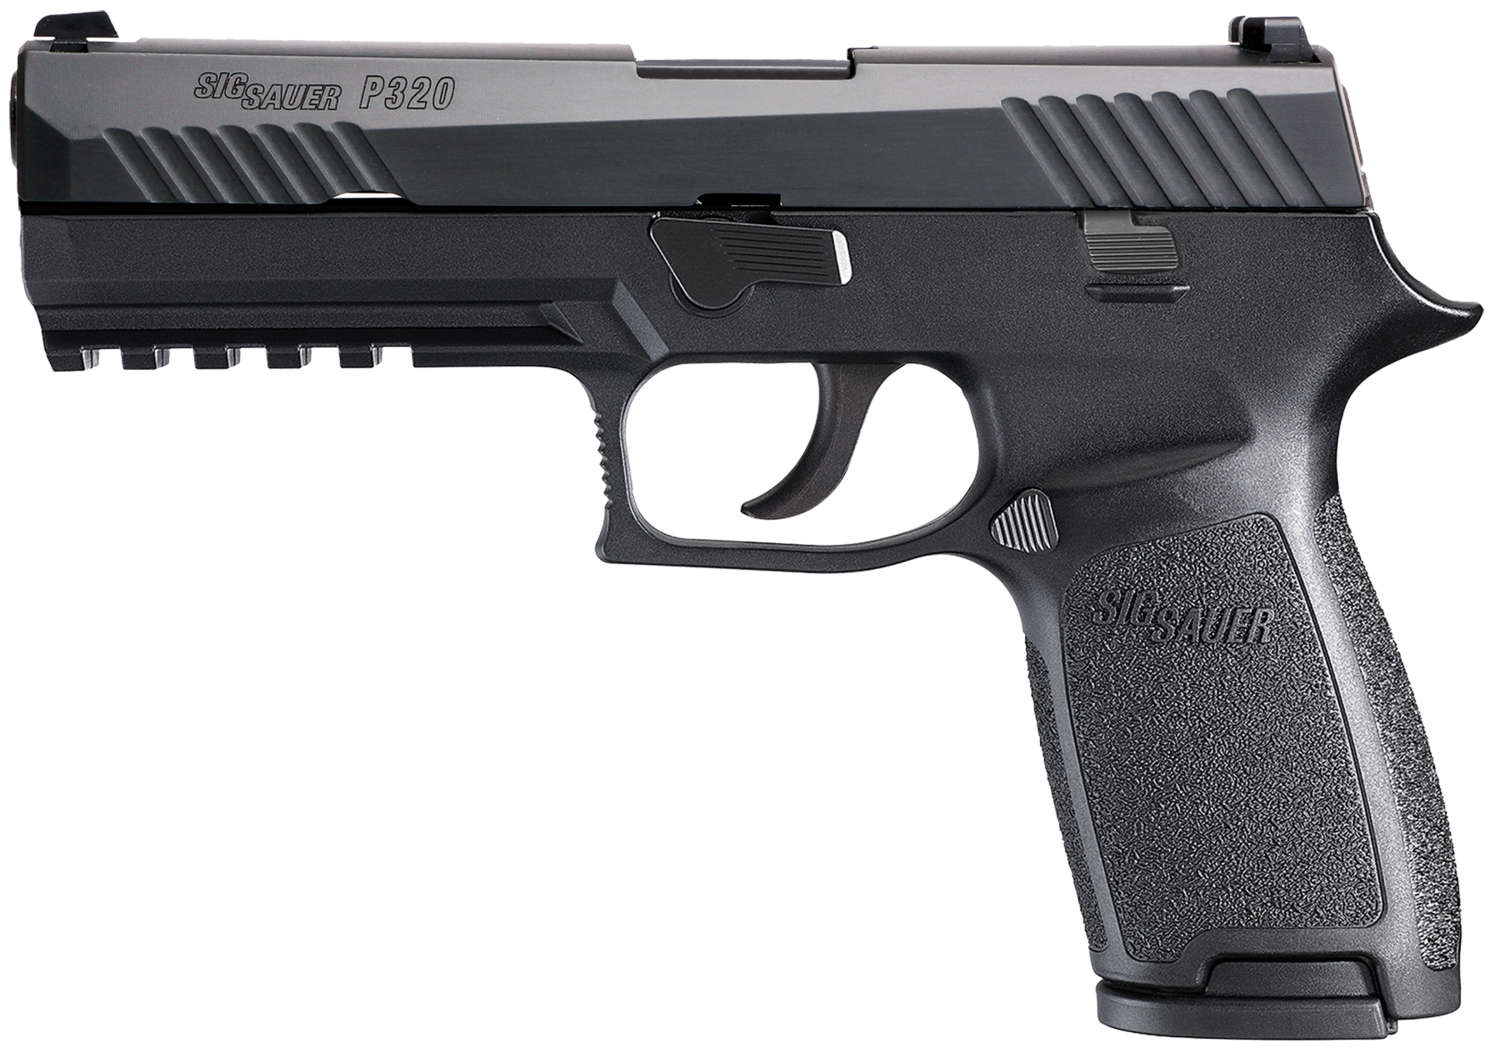 80% Sig Sauer - P320 Full Size 9mm Luger Build Kit - 2 Mags - Comes With P320 80% Insert MUP 1 - Pistol Case